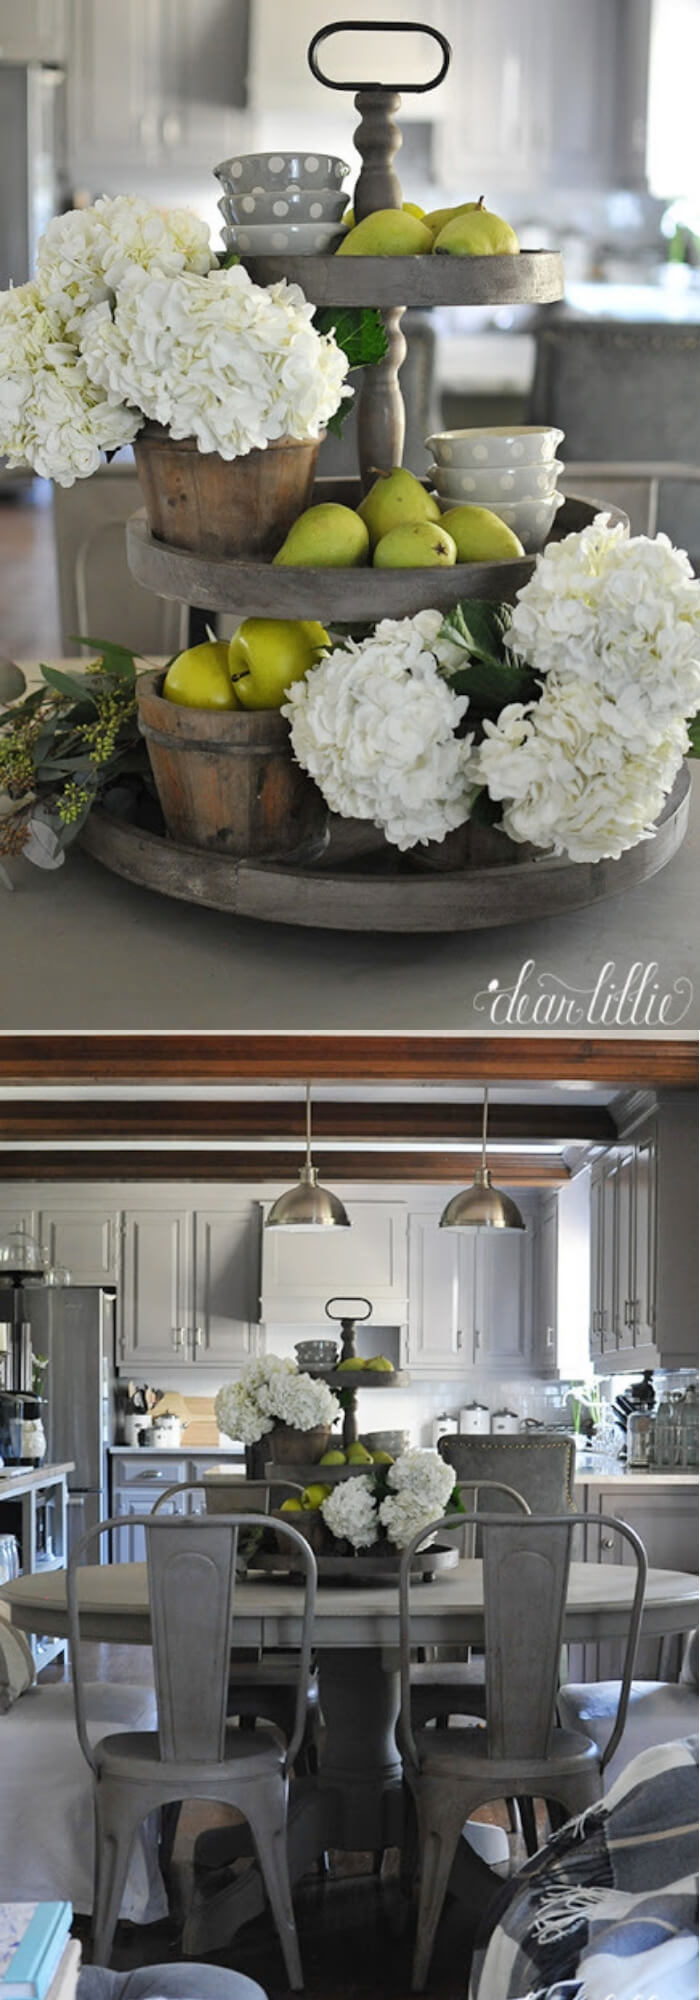 Bring three tiered stand back onto kitchen table withthe cute little polka dot jars | Inspiring Farmhouse Kitchen Design & Decor Ideas